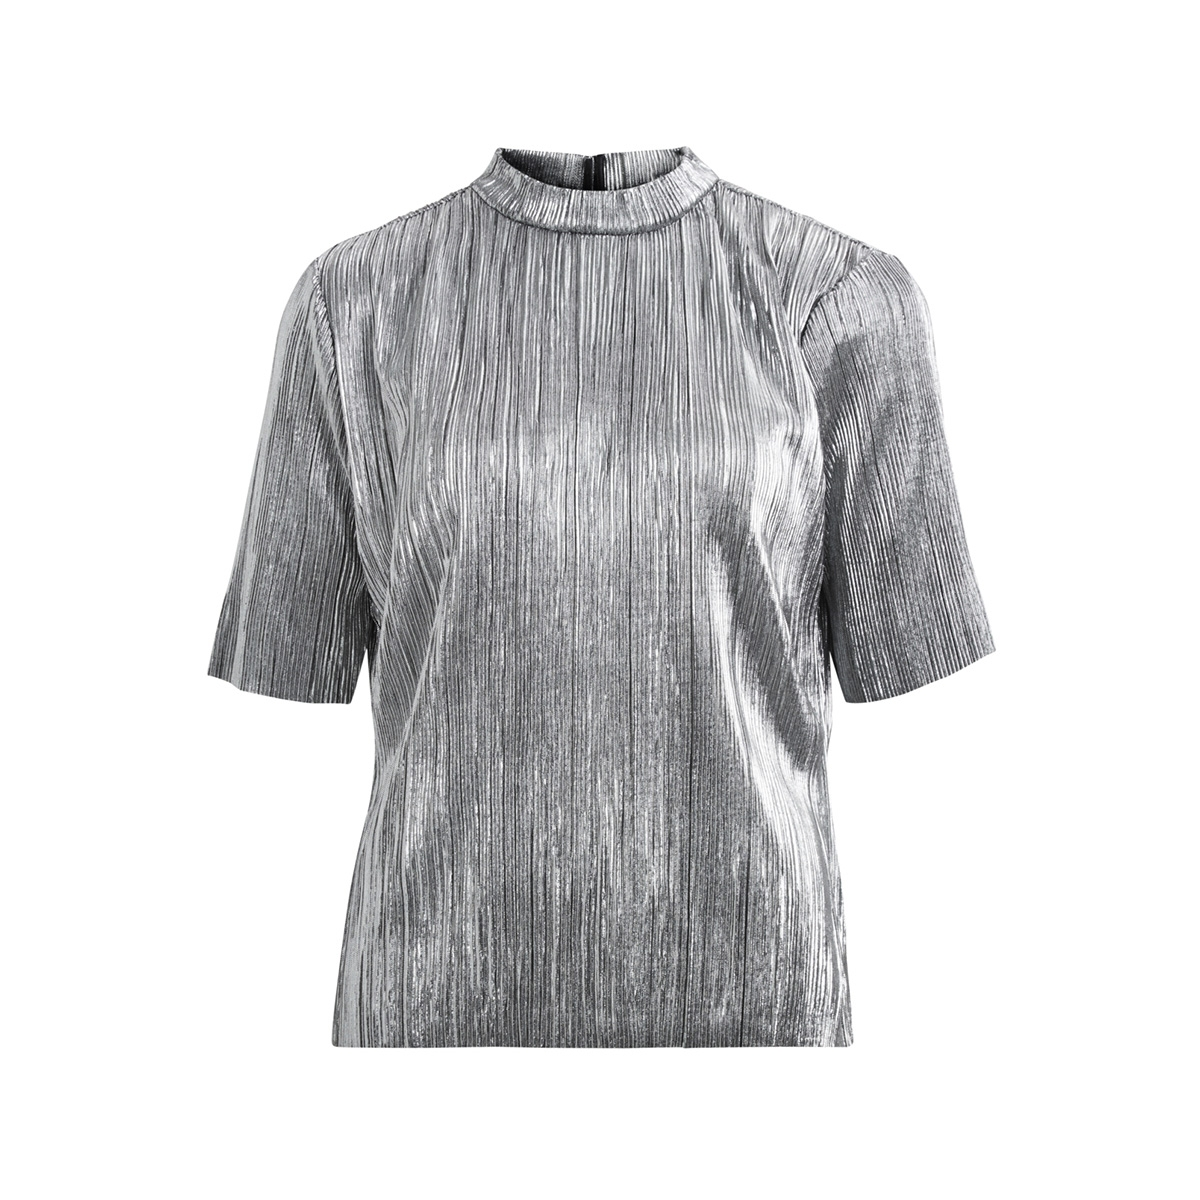 visilvi 2/4 sleeve top 14043904 vila t-shirt silver colour